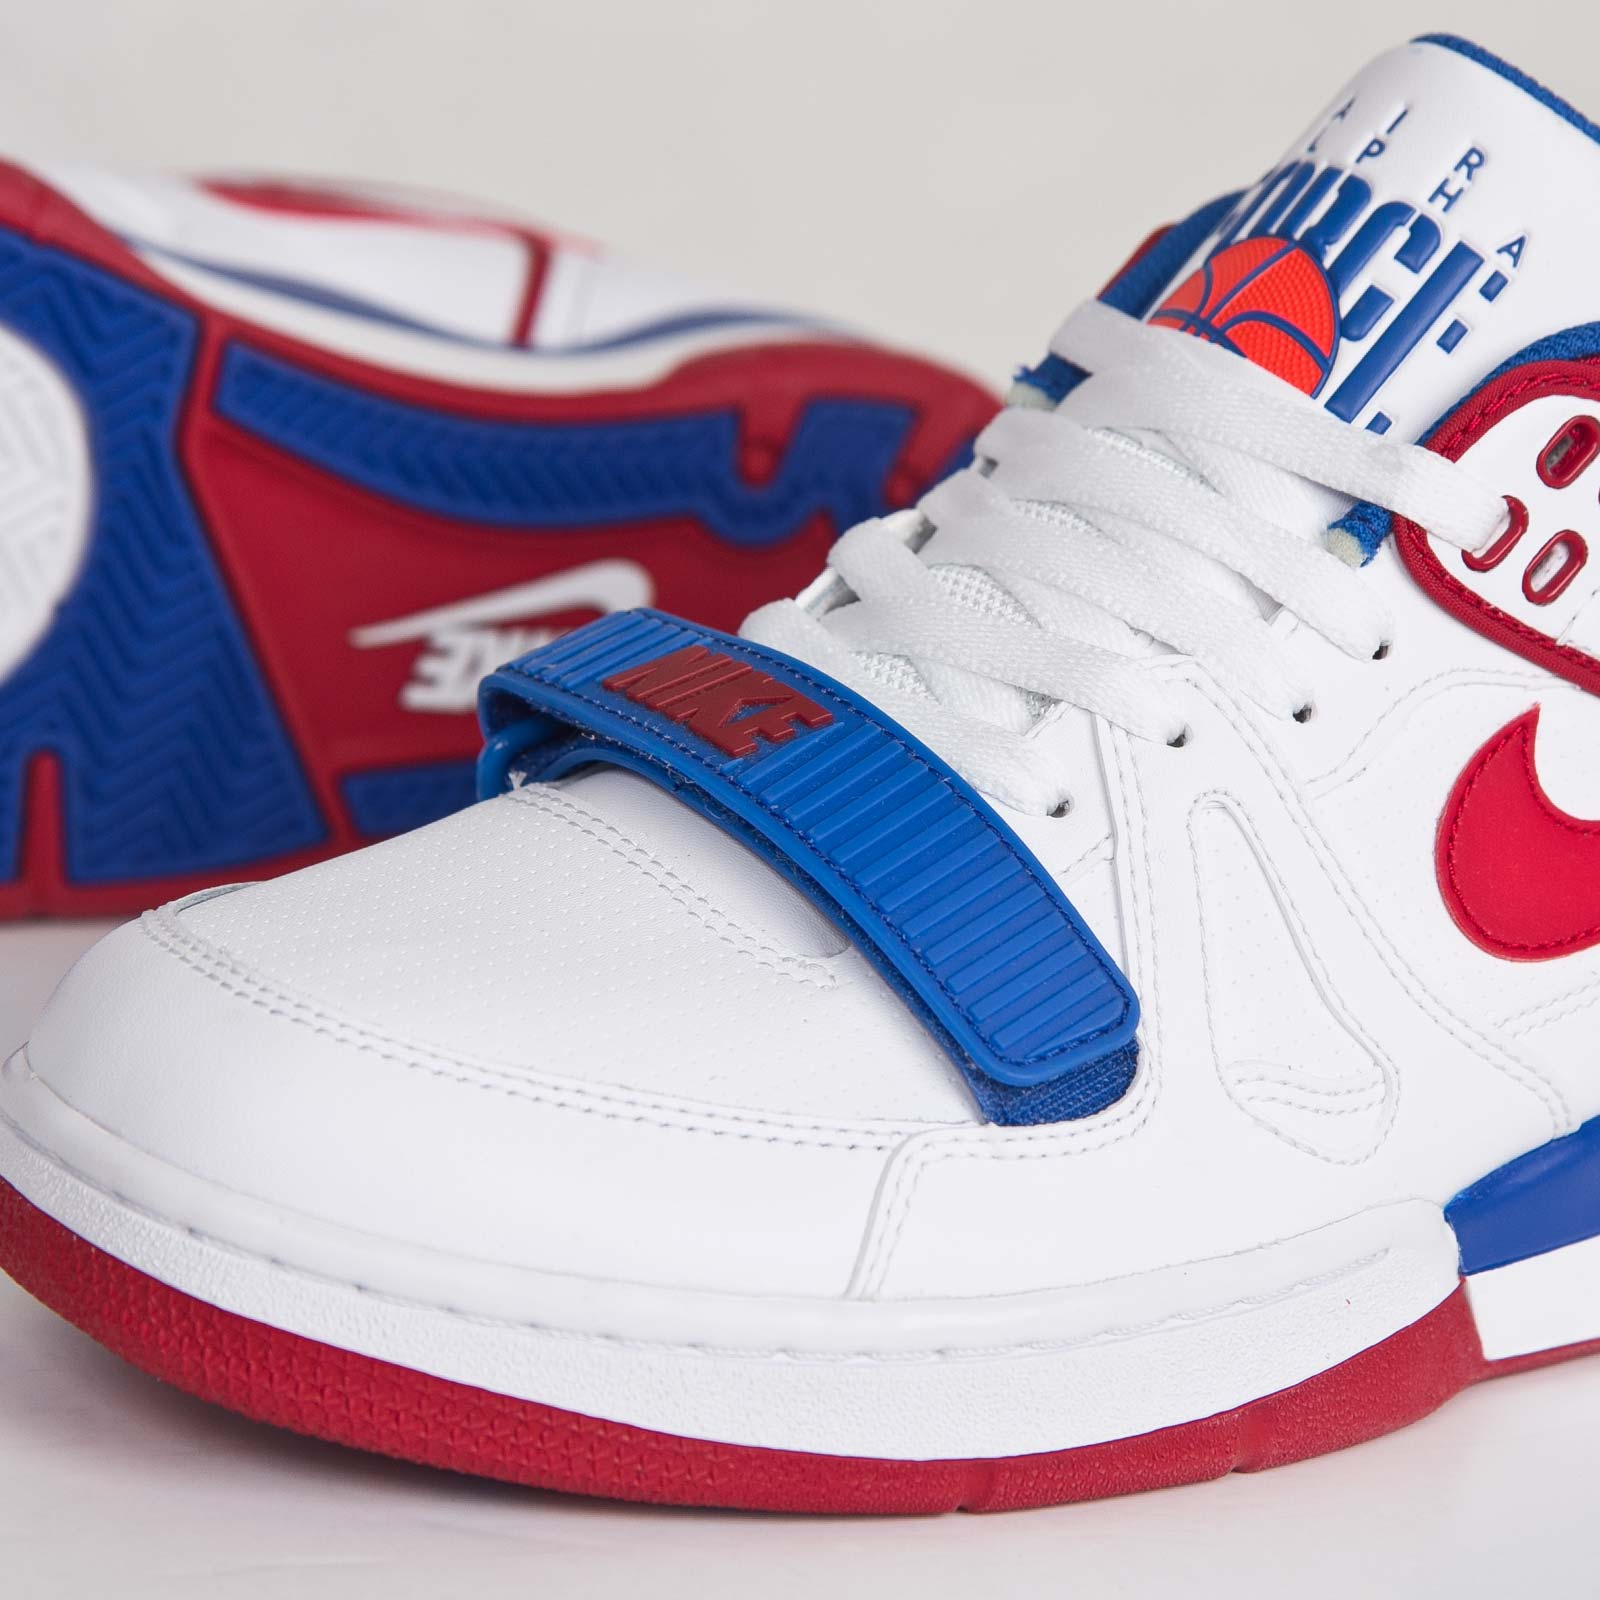 reputable site 1dcdd 83f5a ... Nike Air Alpha Force II